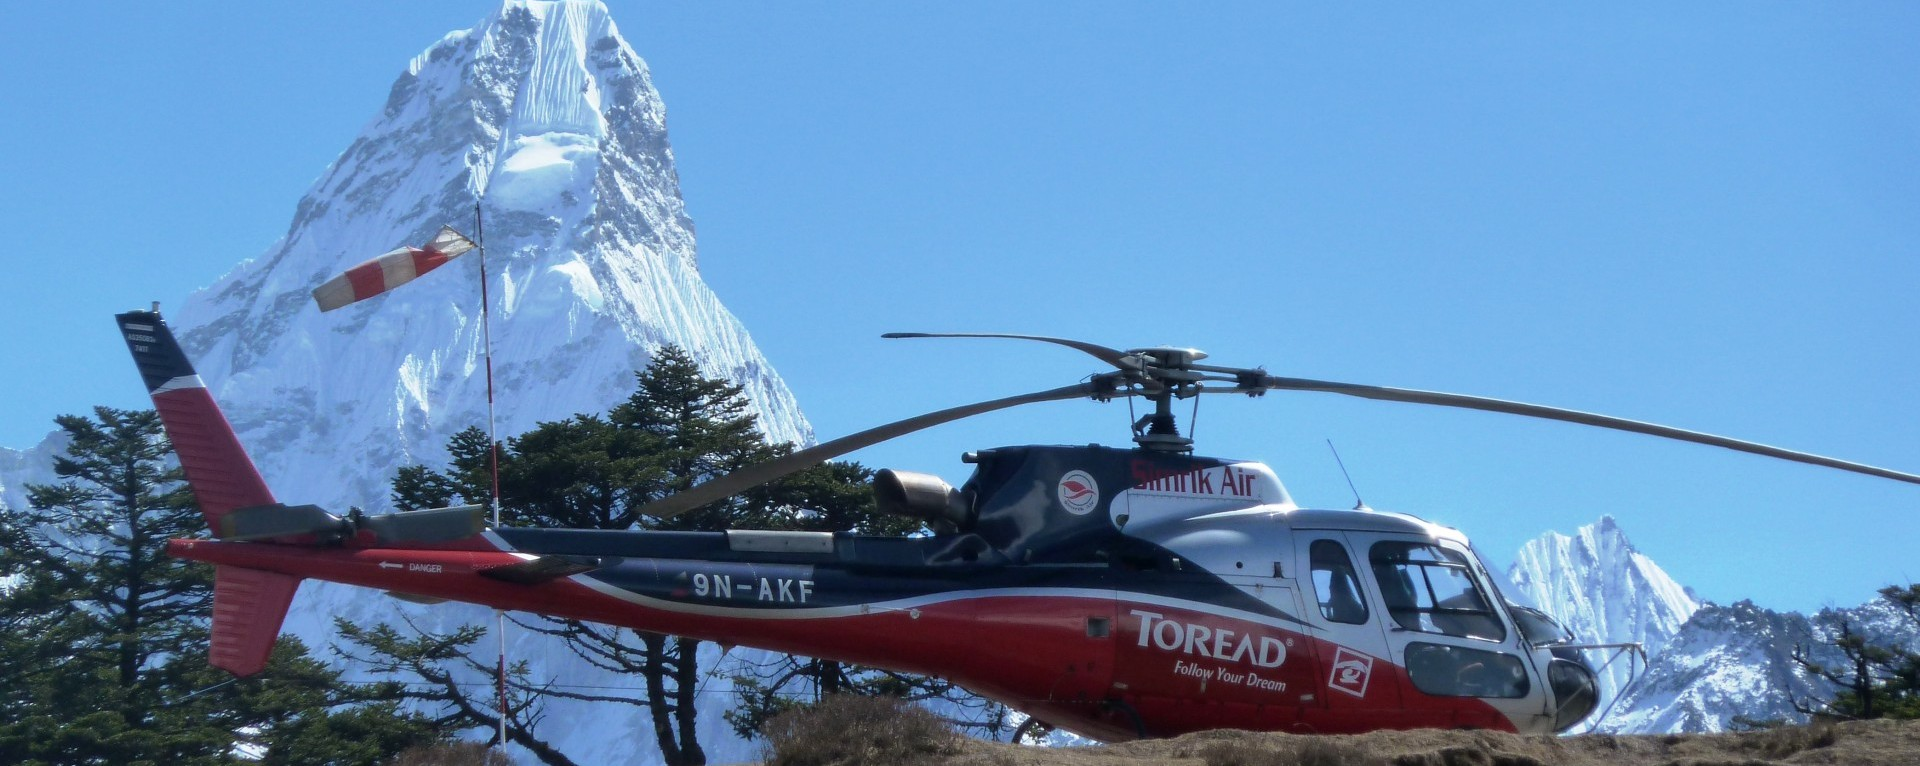 Landing at Everest view hotel for breakfast.